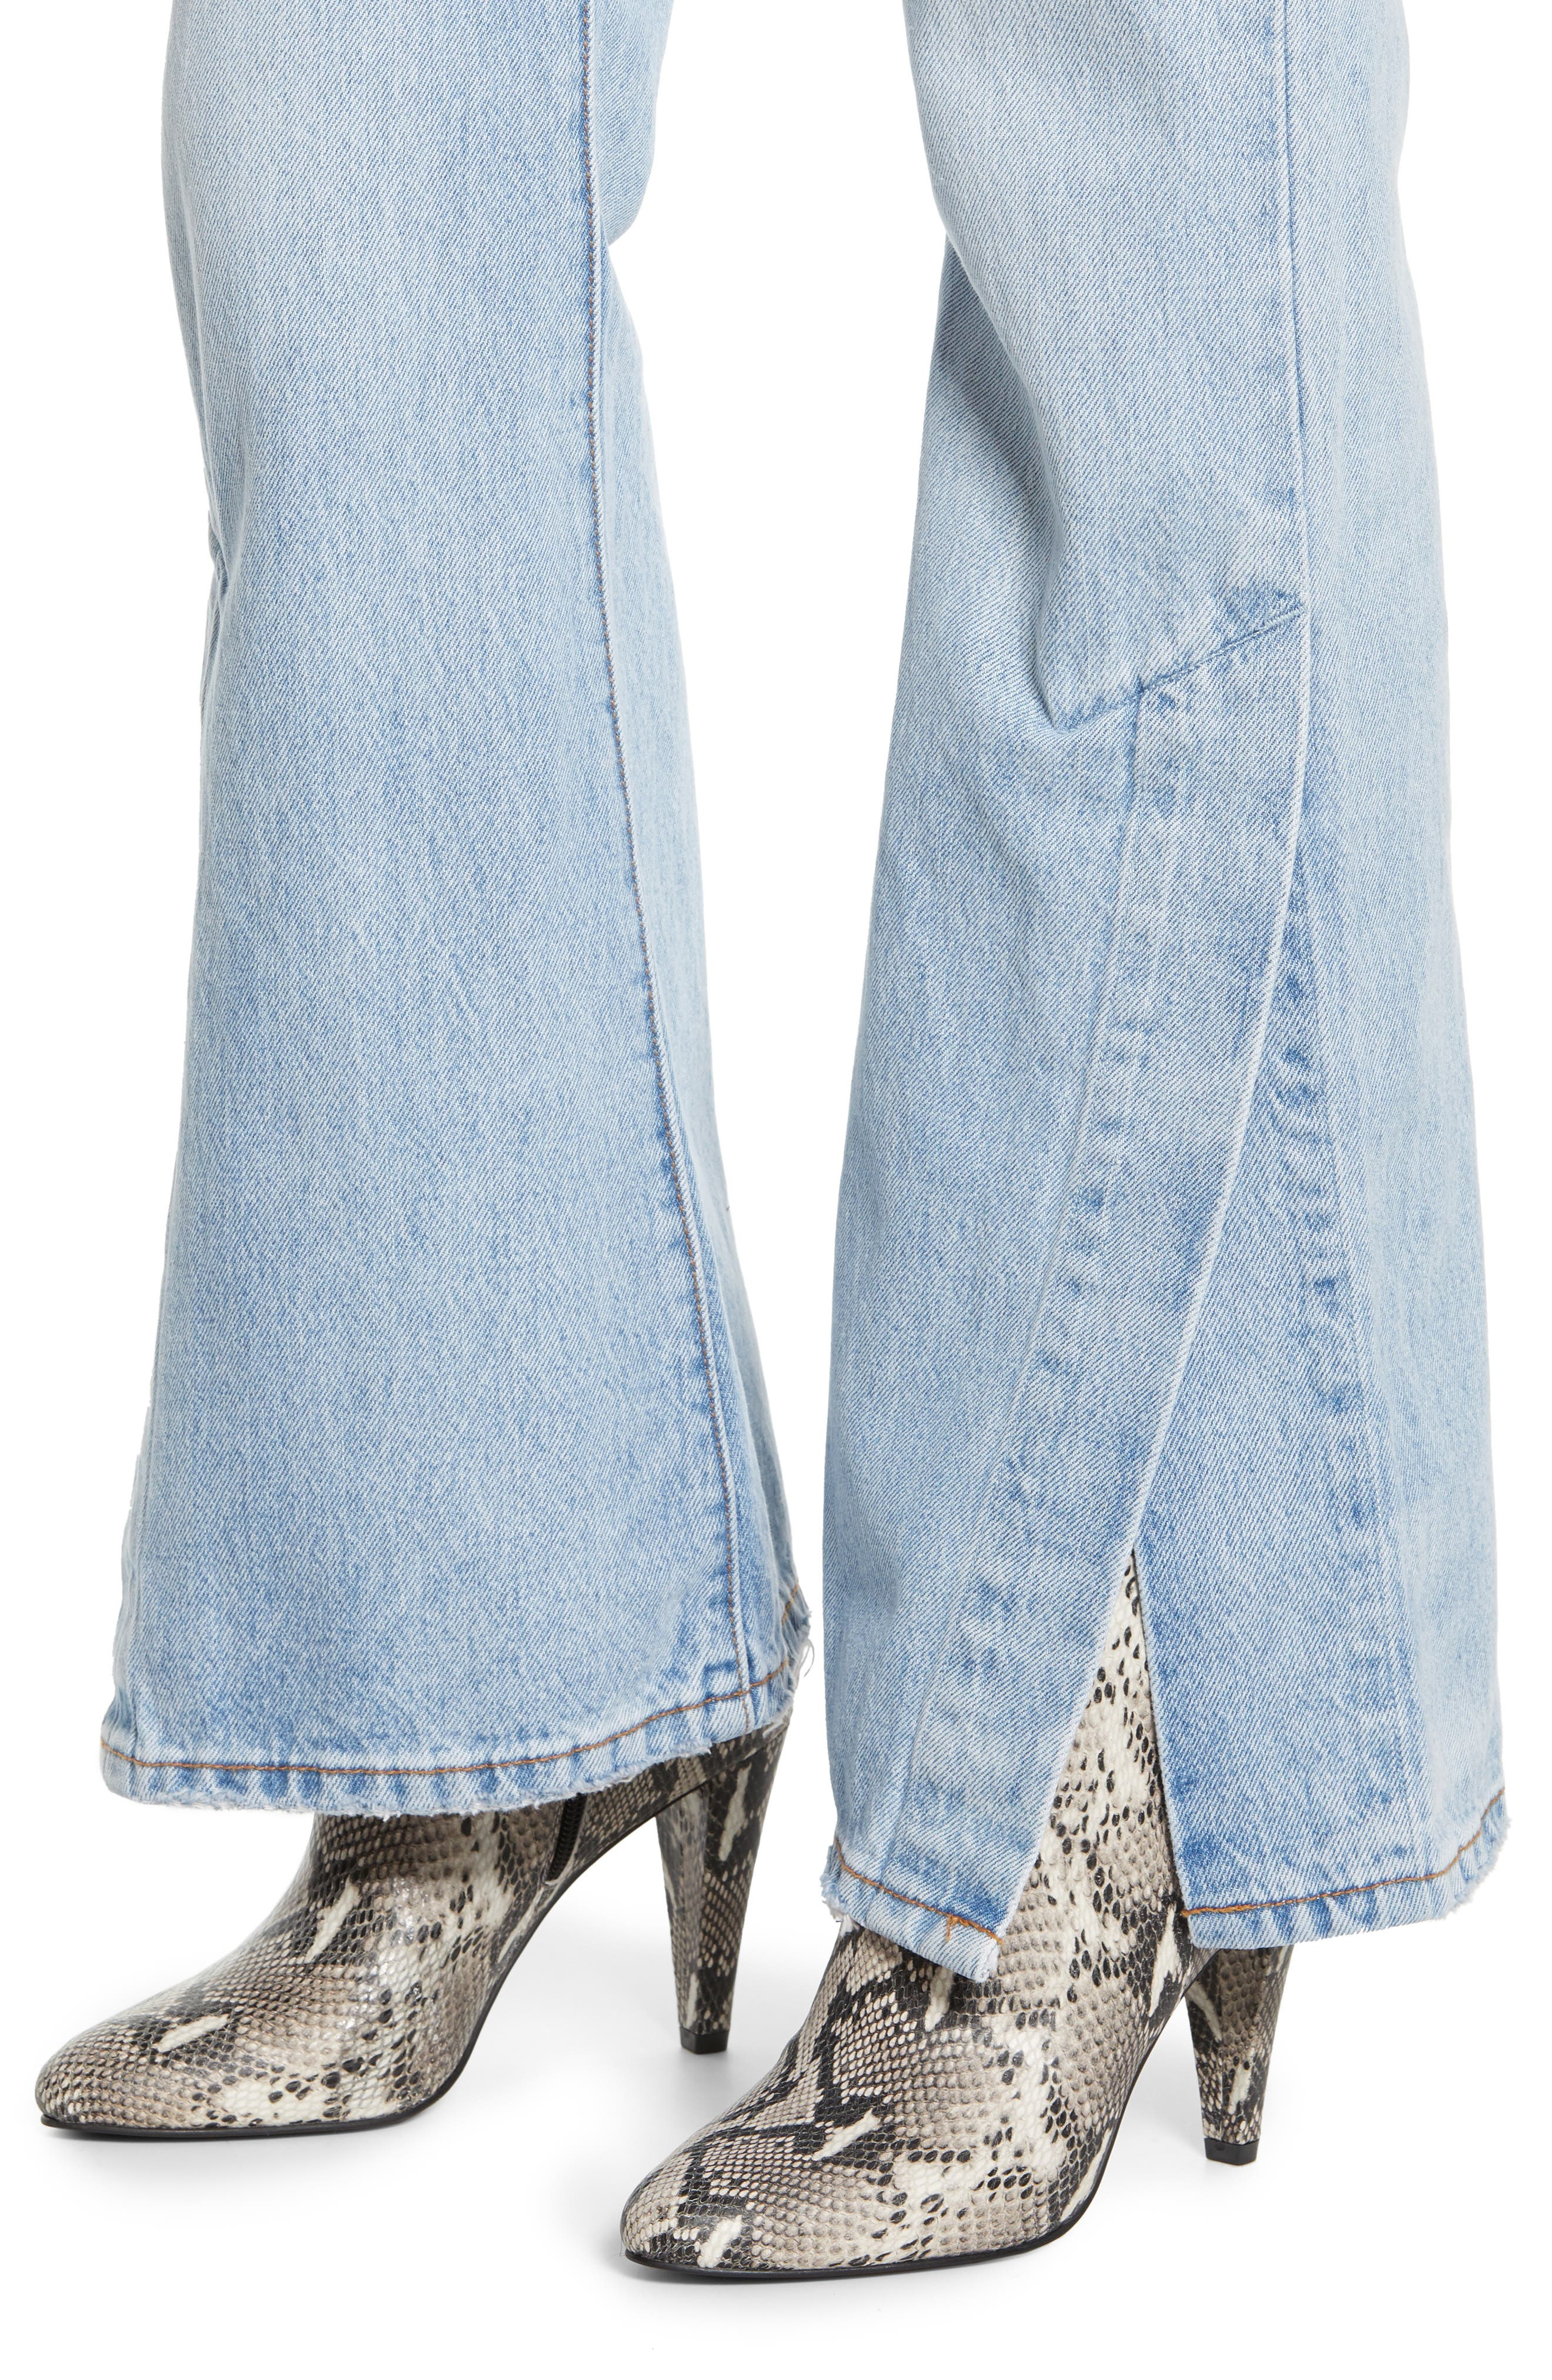 LEVI'S<SUP>®</SUP>, Ribcage Super High Waist Split Flare Jeans, Alternate thumbnail 5, color, DAZED AND CONFUSED